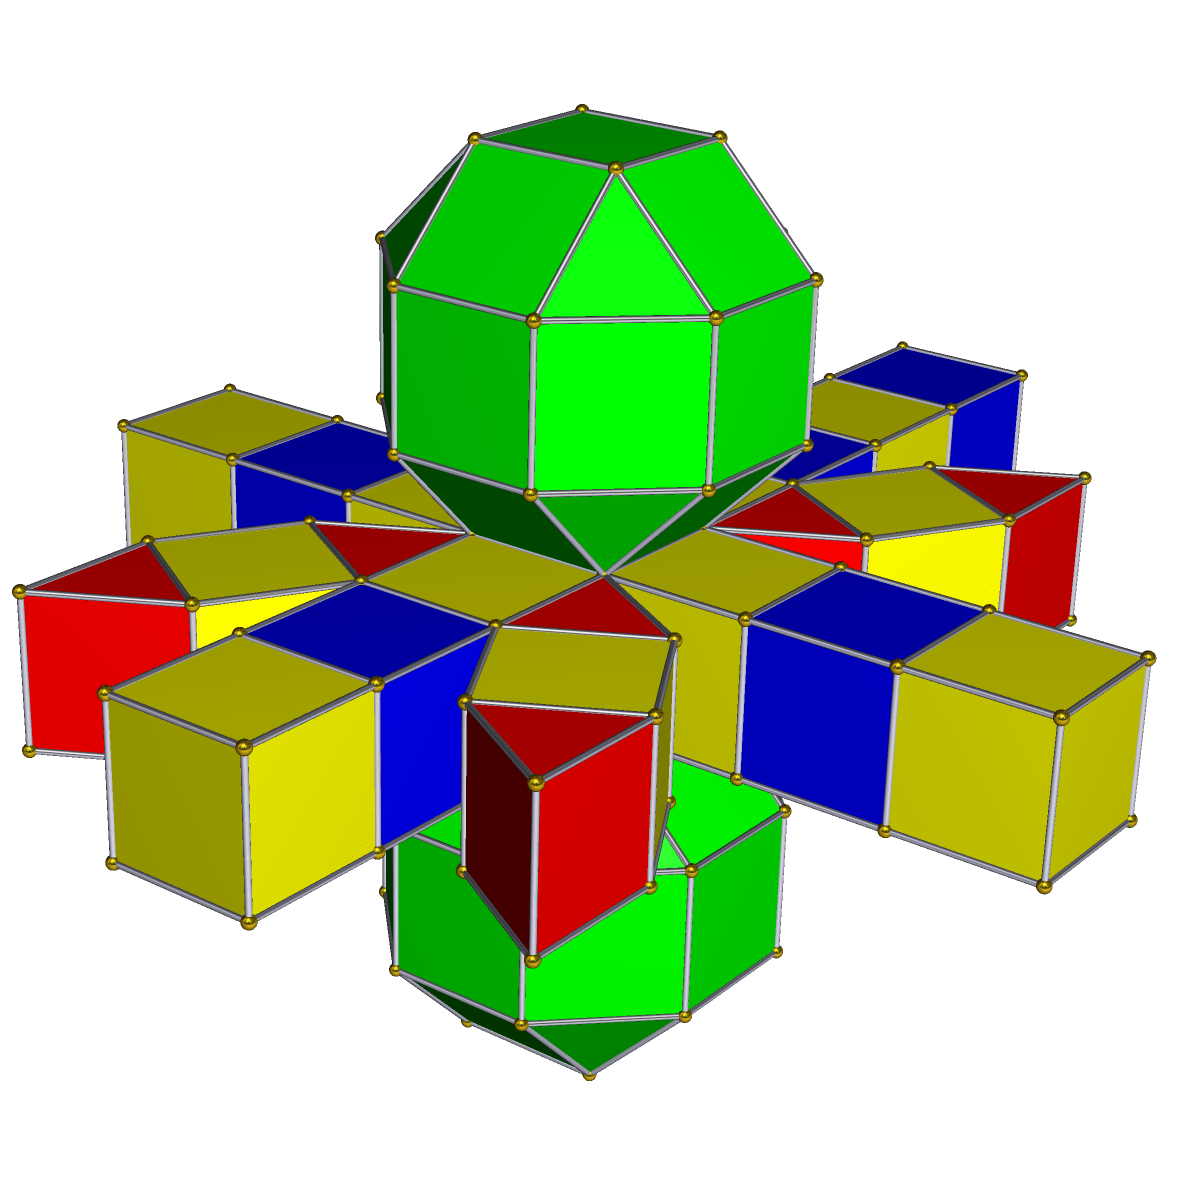 net diagram of triangular prism rotronics dual battery system wiring rhombicuboctahedral wikipedia